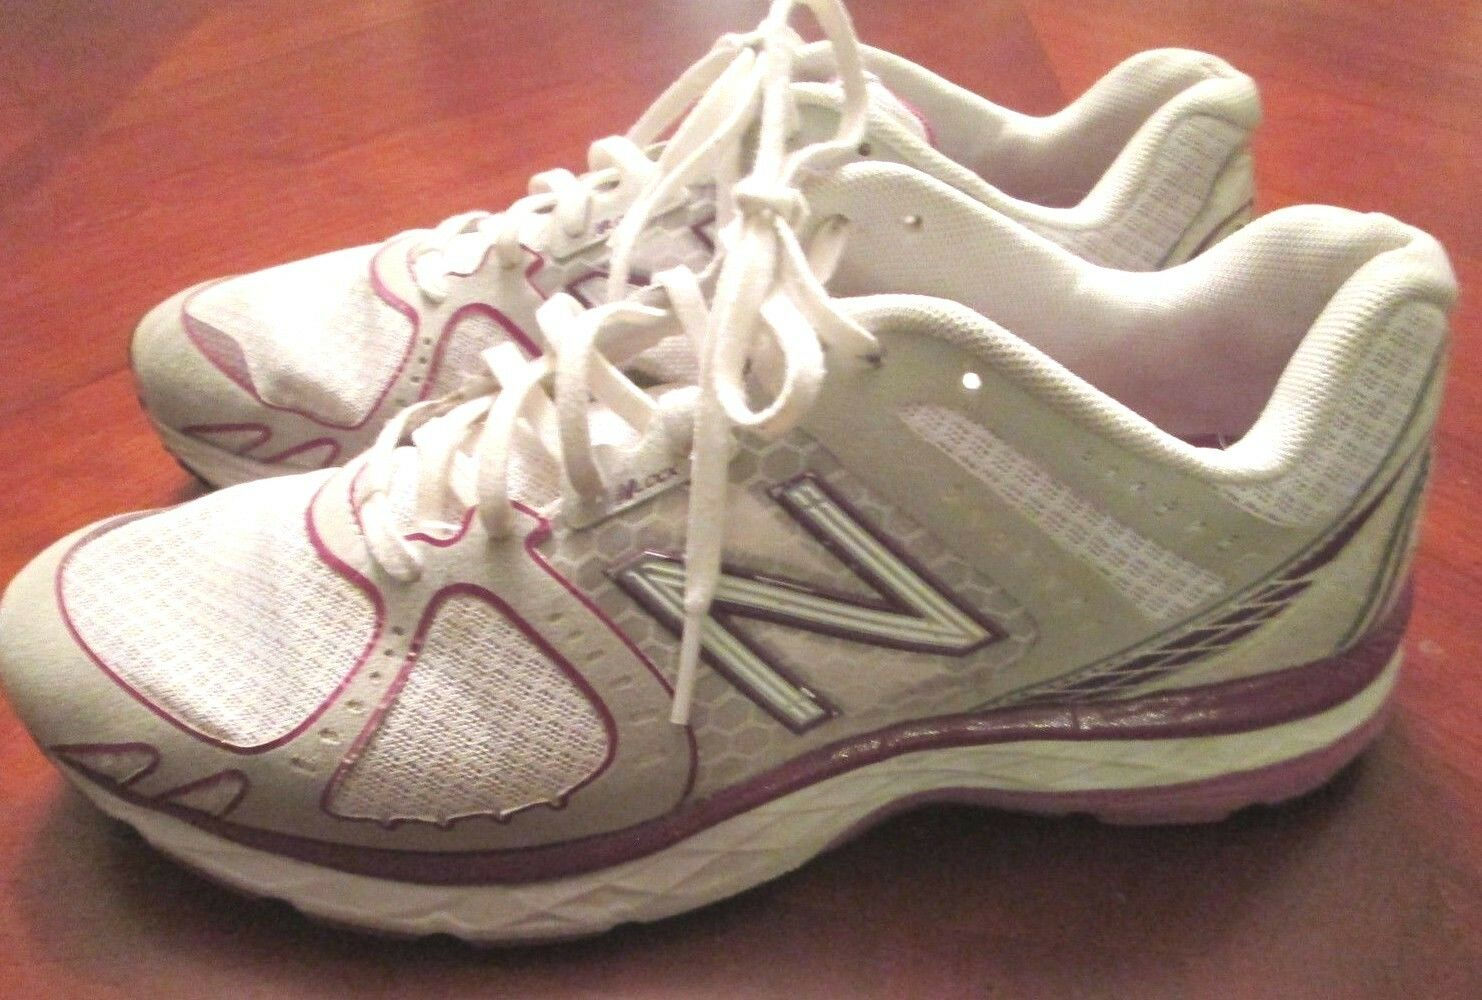 WOMEN'S NEW BALANCE 790 RUNNING SHOES SIZE 10 B W790WP 1